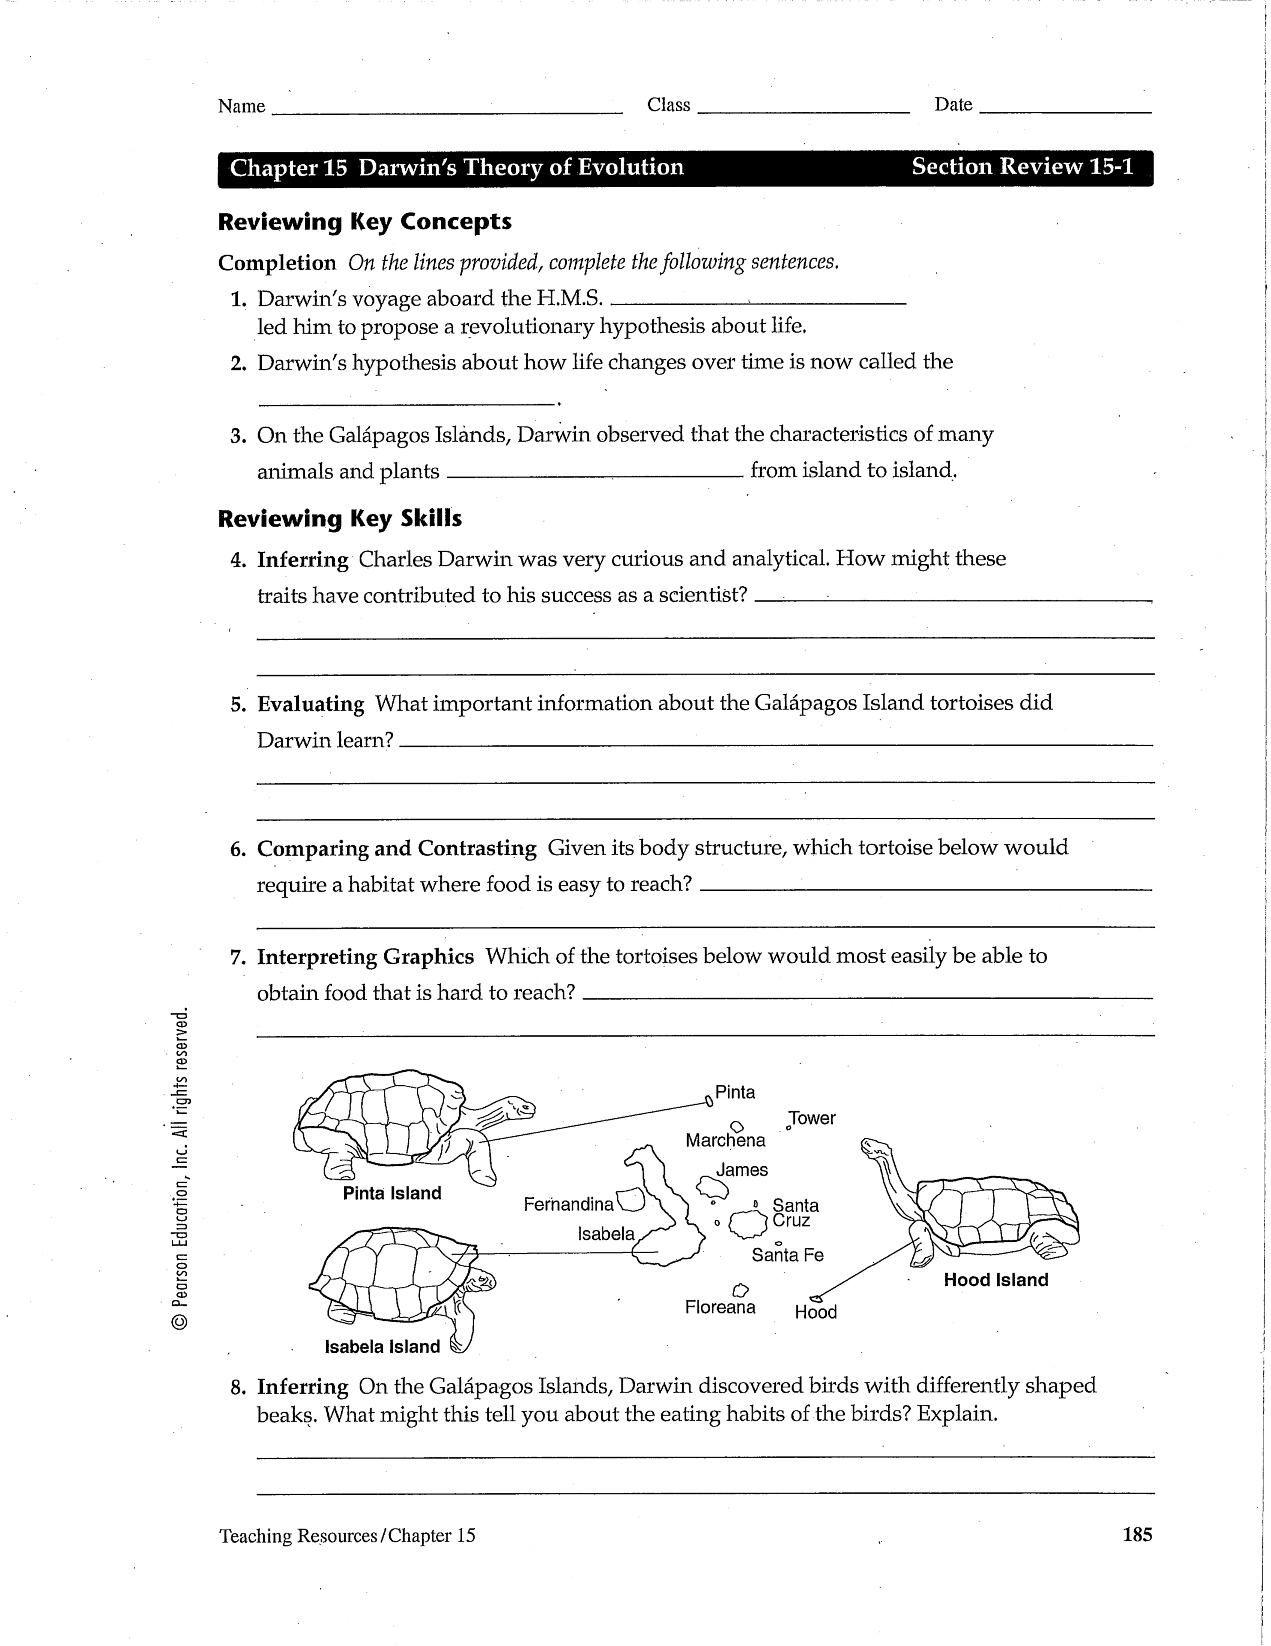 worksheet Bill Nye Evolution Worksheet darwins theory of evolution worksheet chapter 15 worksheet